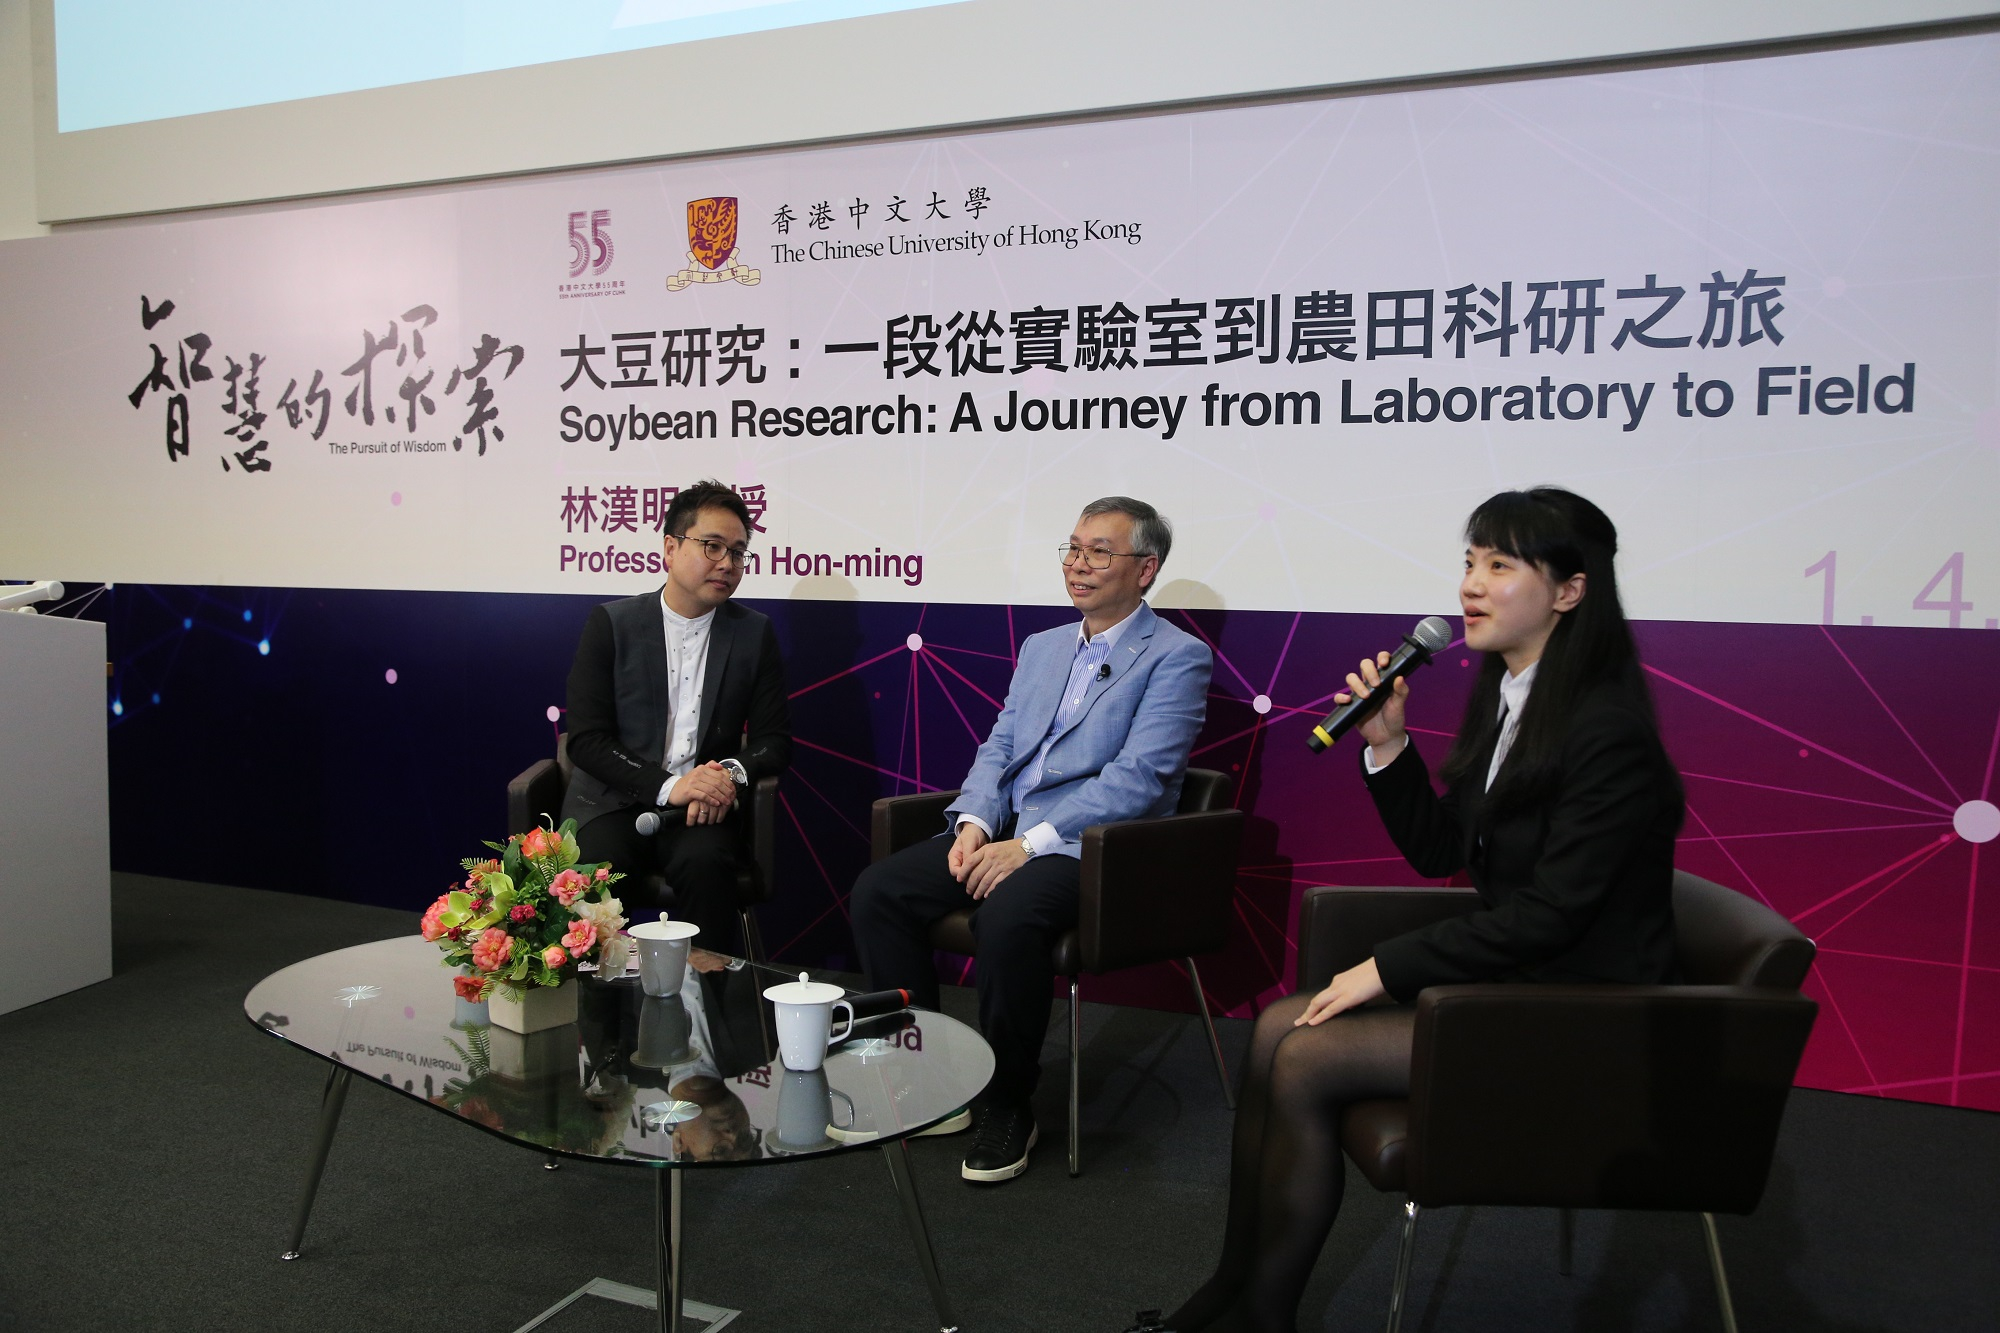 Professor Lam has a fruitful discussion with the hosts.